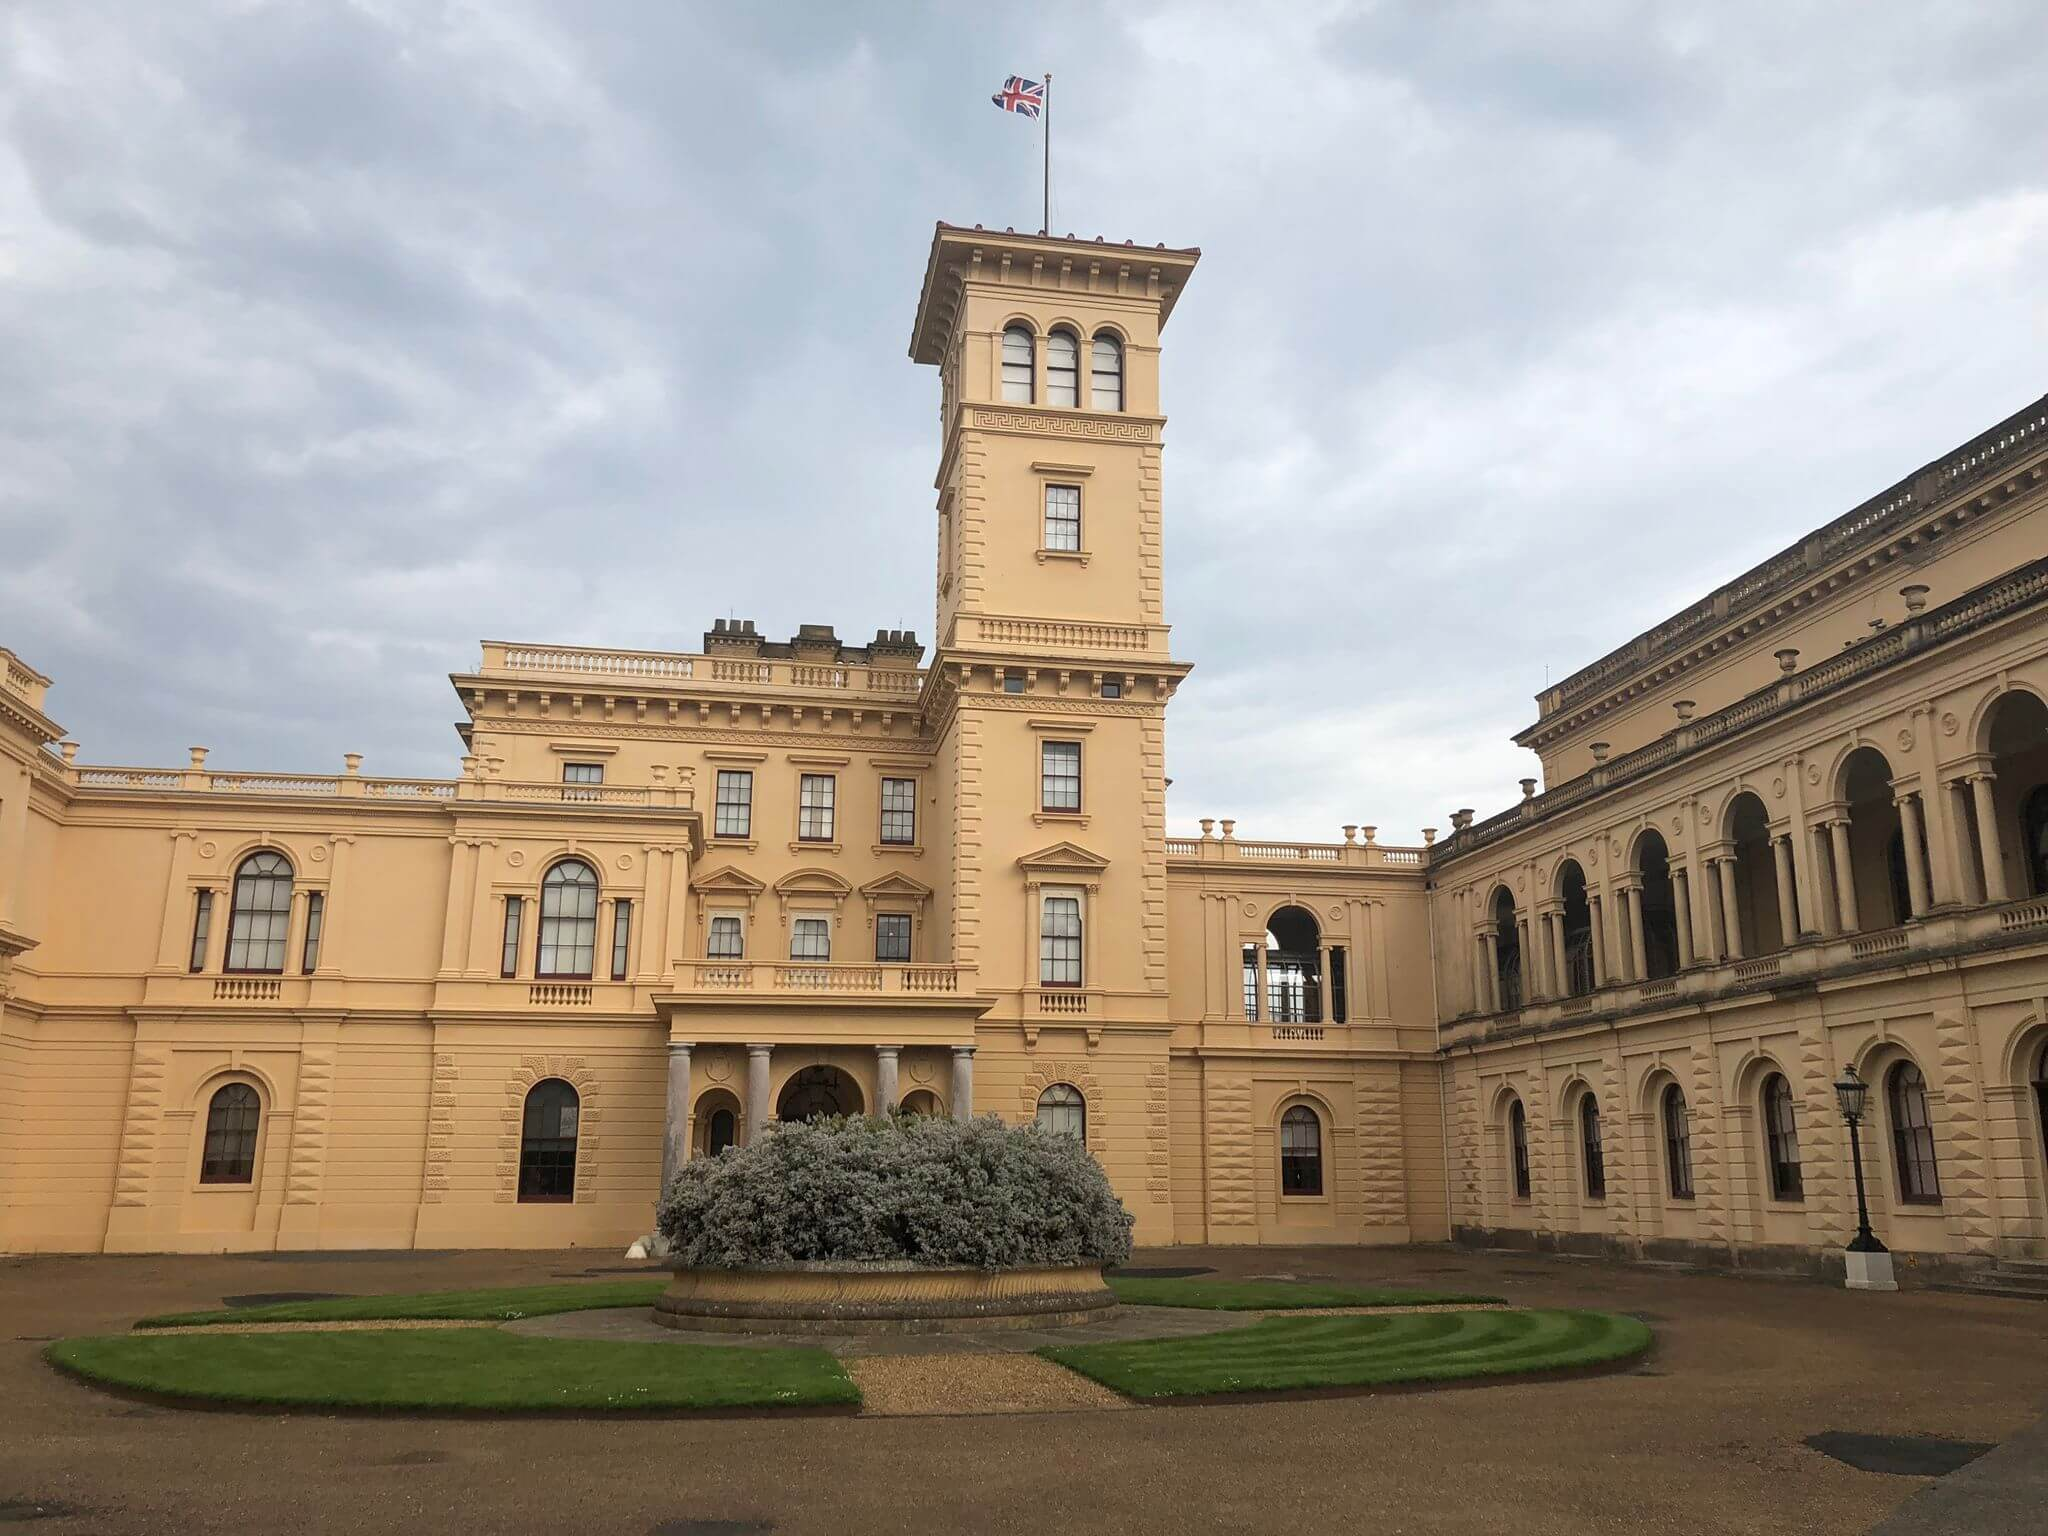 outside view of osborne house on the isle of wight